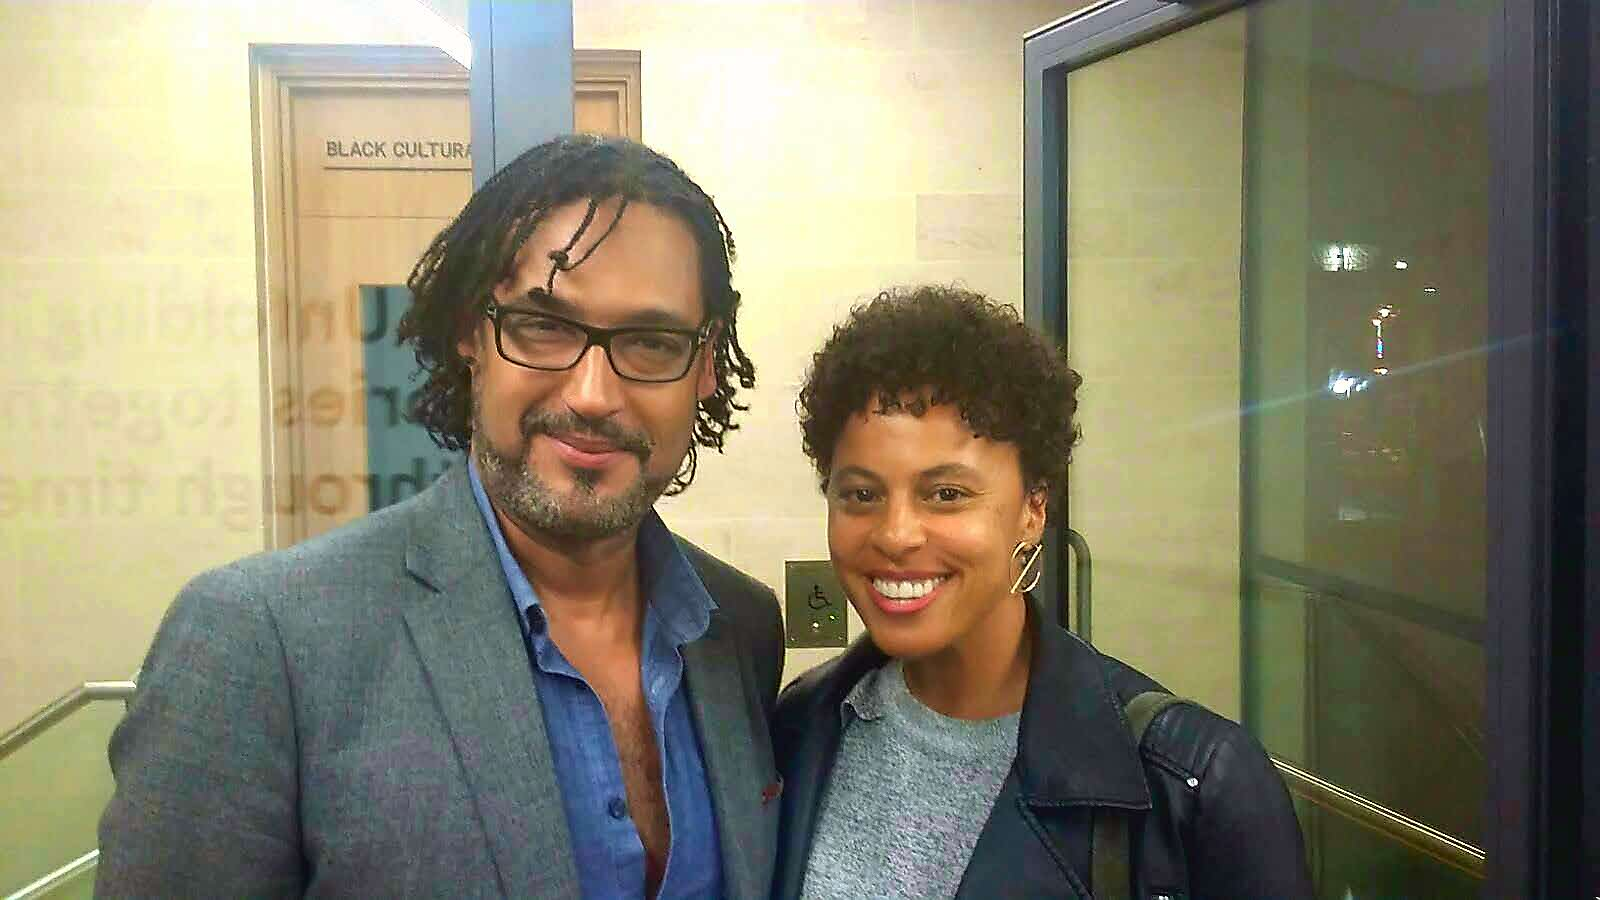 Not big on photo ops, but genuinely pleased to meet the historian and presenter @DavidOlusoga tonight at @bcaheritage. Great work, Sir! https://t.co/OoHryyBKzv